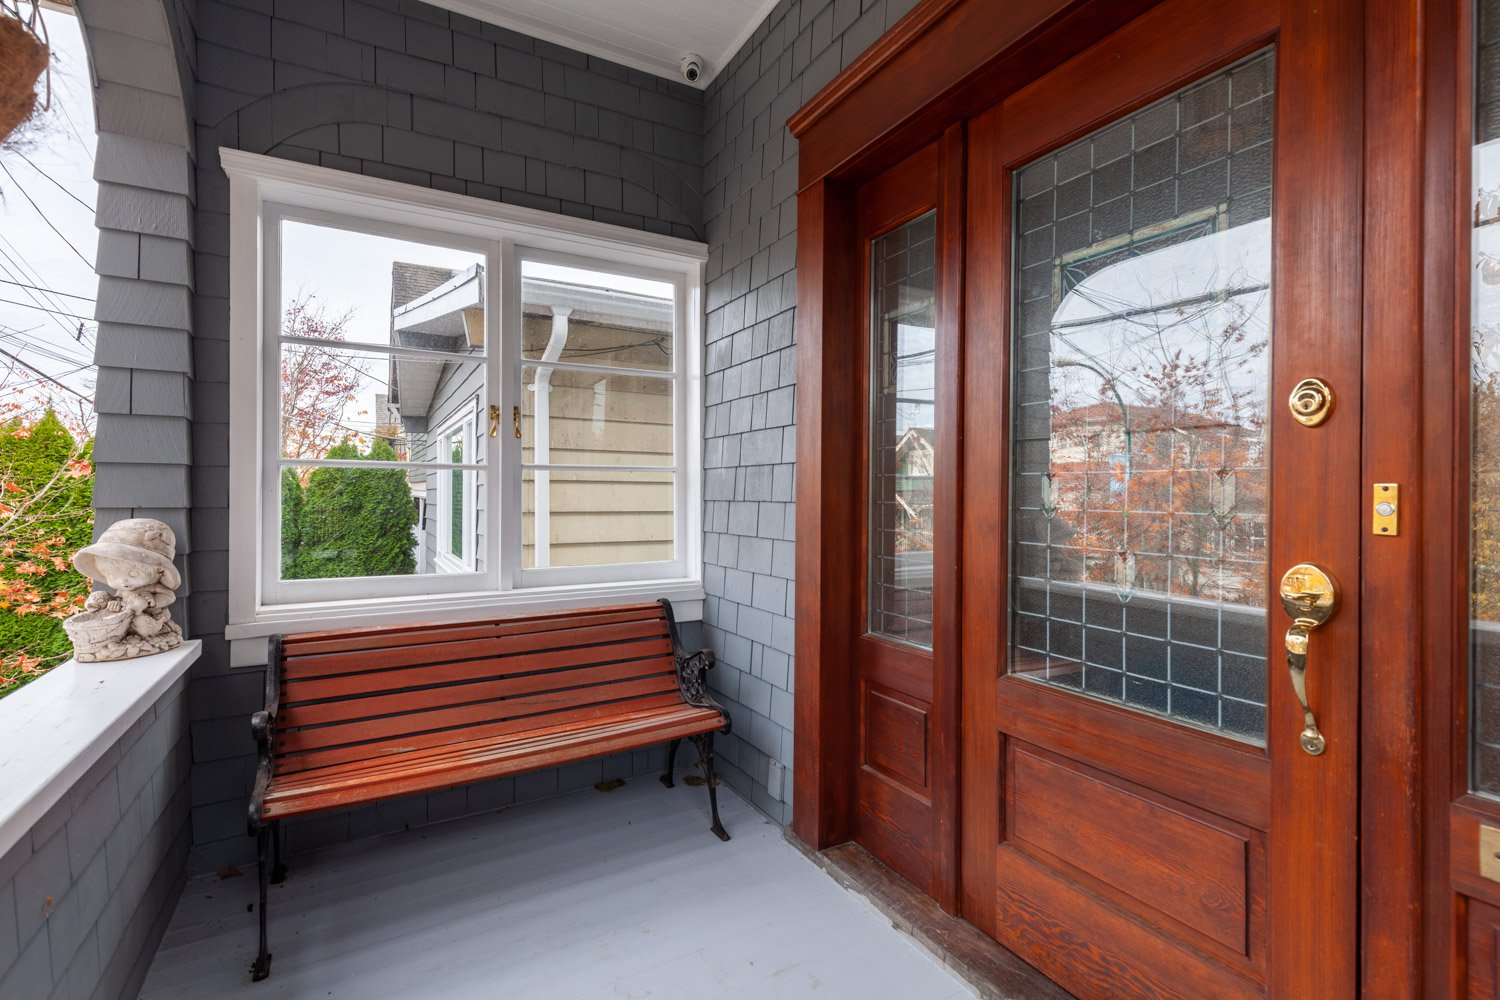 Main Photo: 120 24 Avenue in Vancouver: Main House for sale (Vancouver East)  : MLS®# R2419469